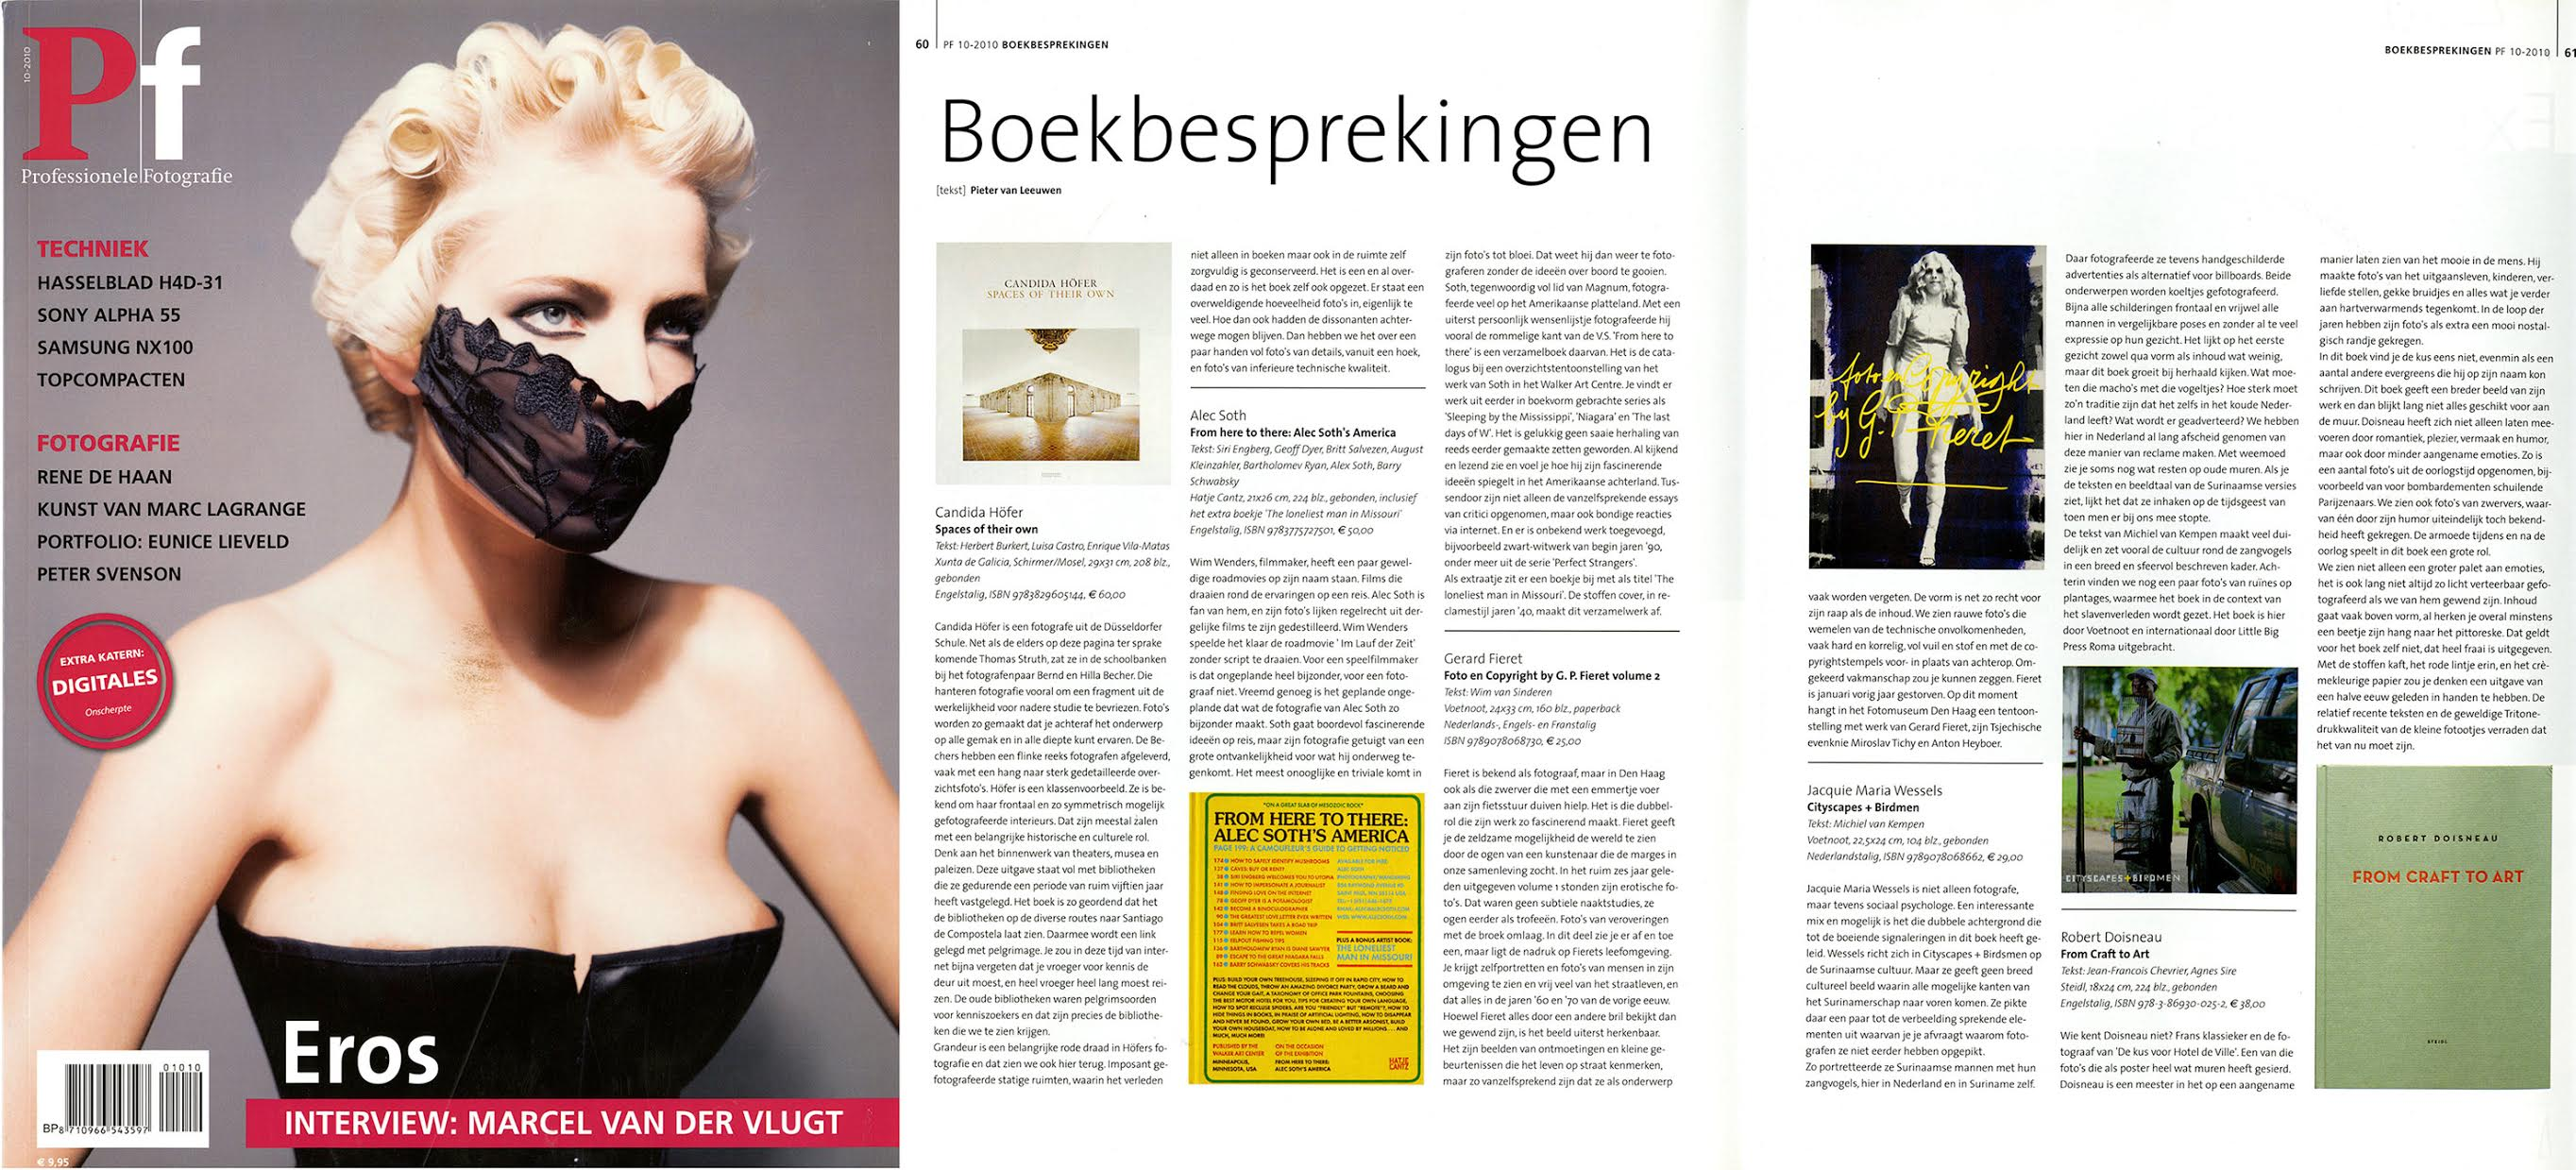 review pf magazine photo book cityscapes and birdman jacquie maria wessels